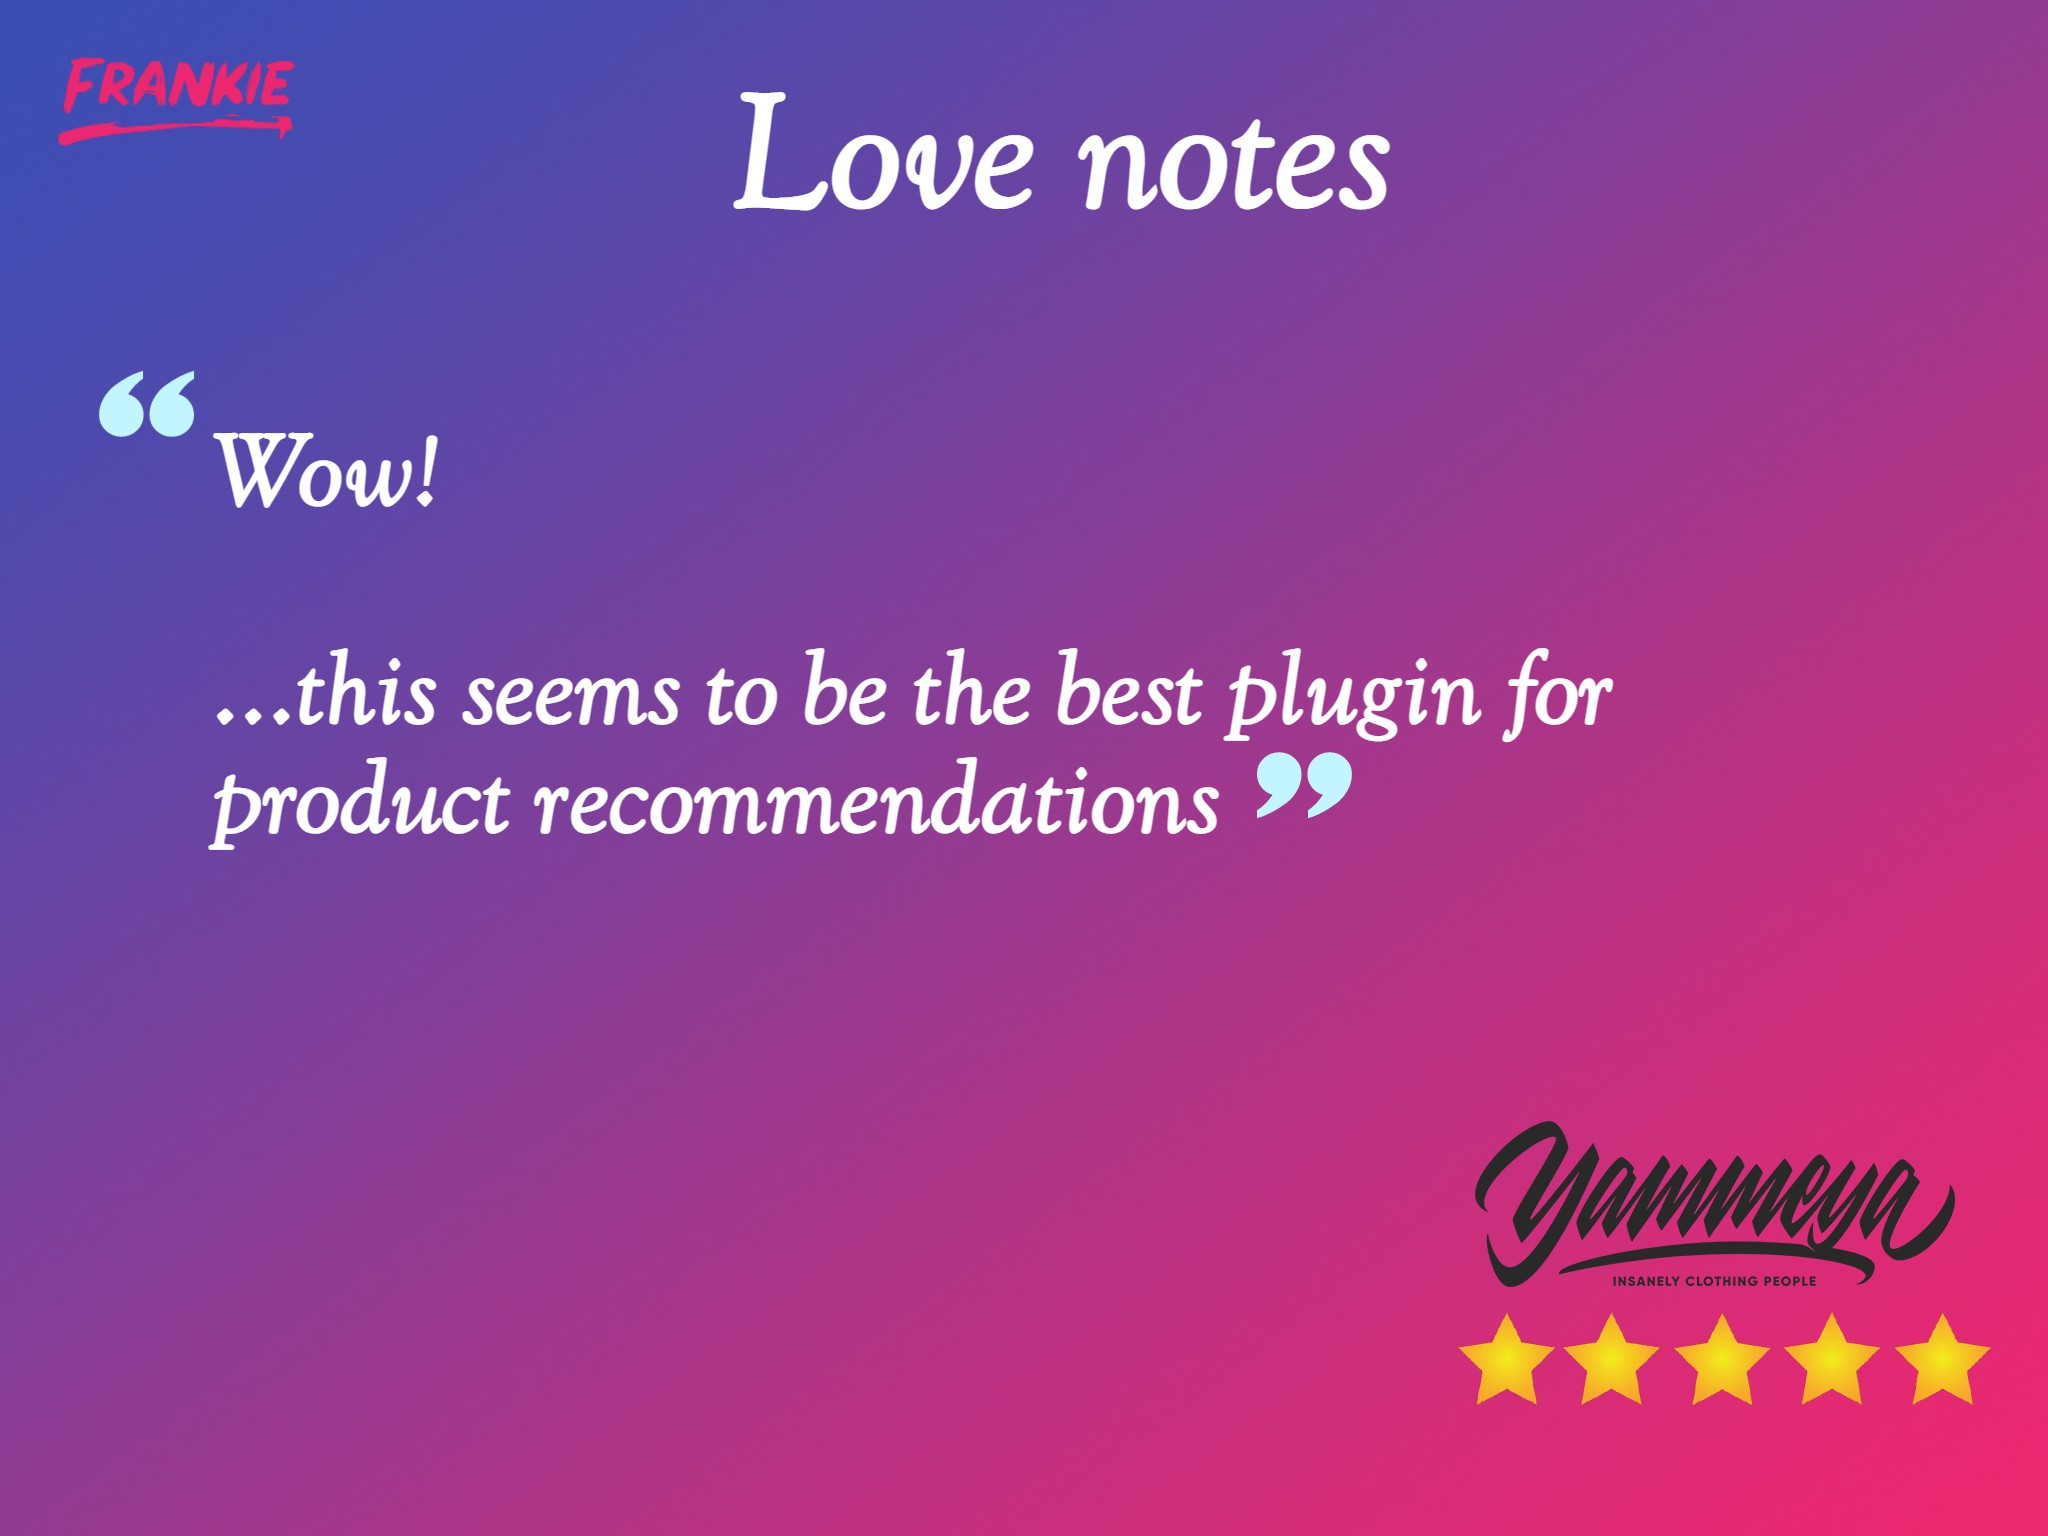 Frankie Recommendations 5-star review by Yammeya